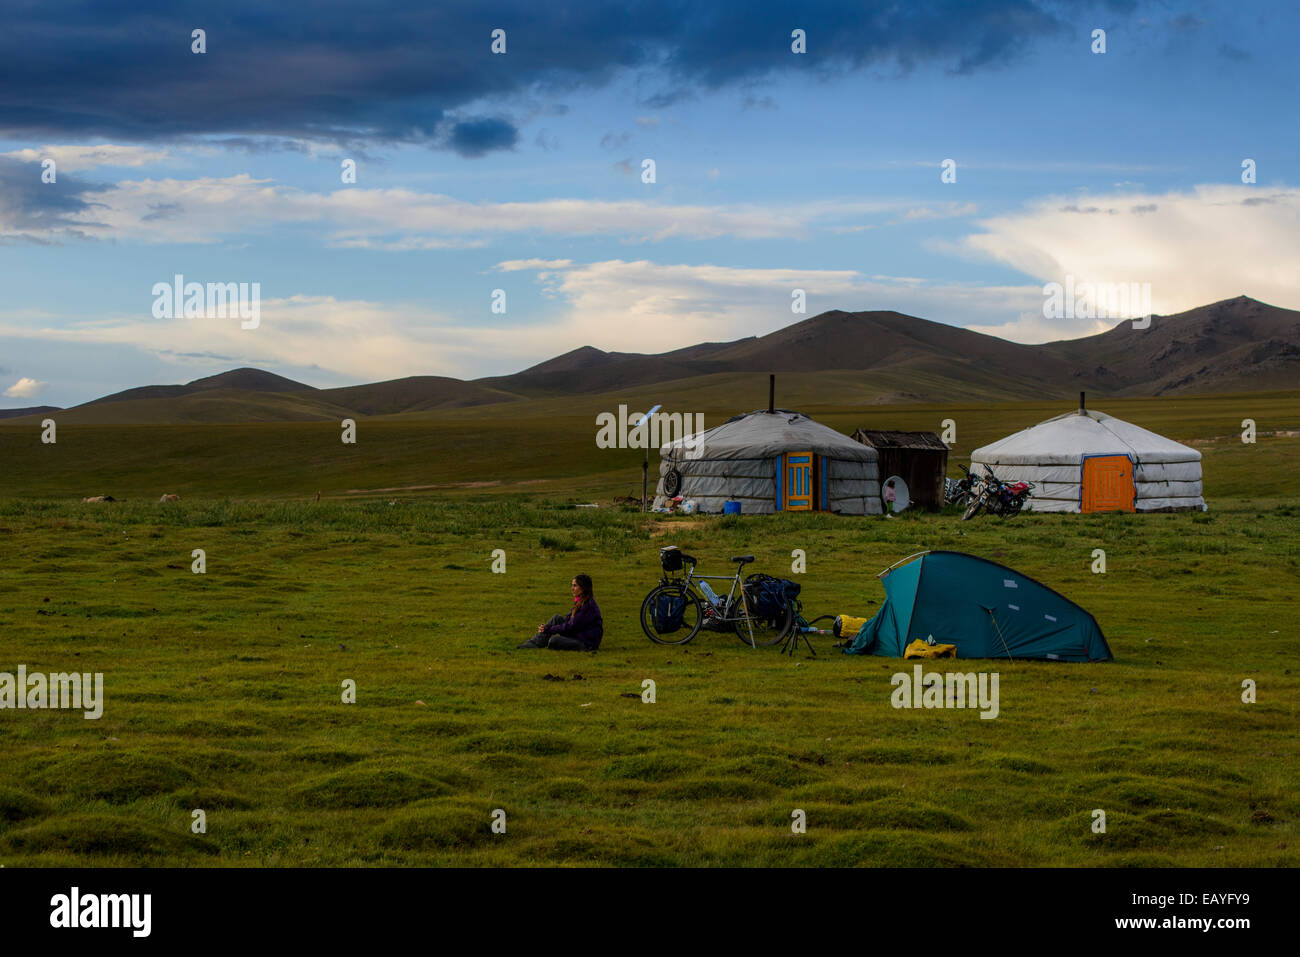 Camping next to traditional gers, Mongolia - Stock Image